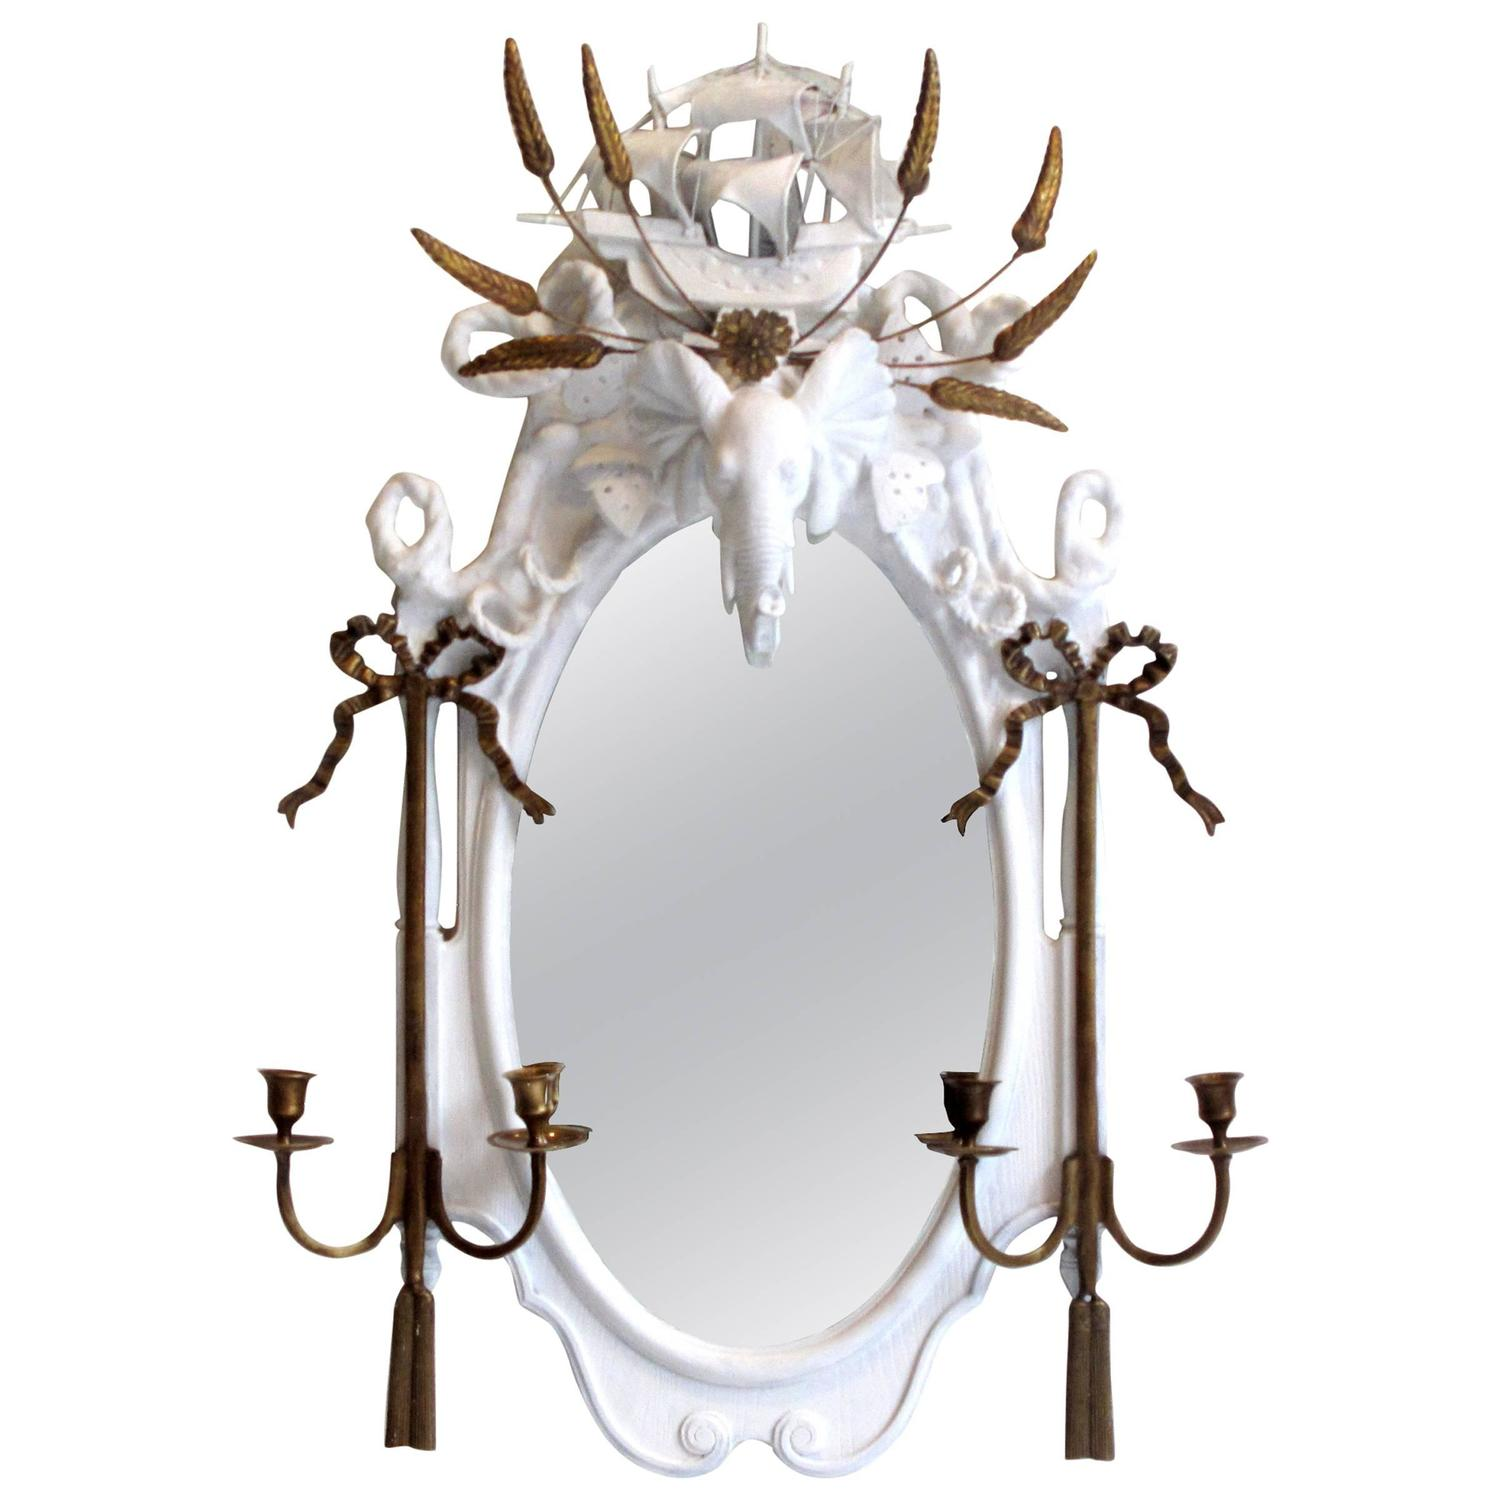 the elephant prince objet trouve plaster mirror for sale at 1stdibs. Black Bedroom Furniture Sets. Home Design Ideas